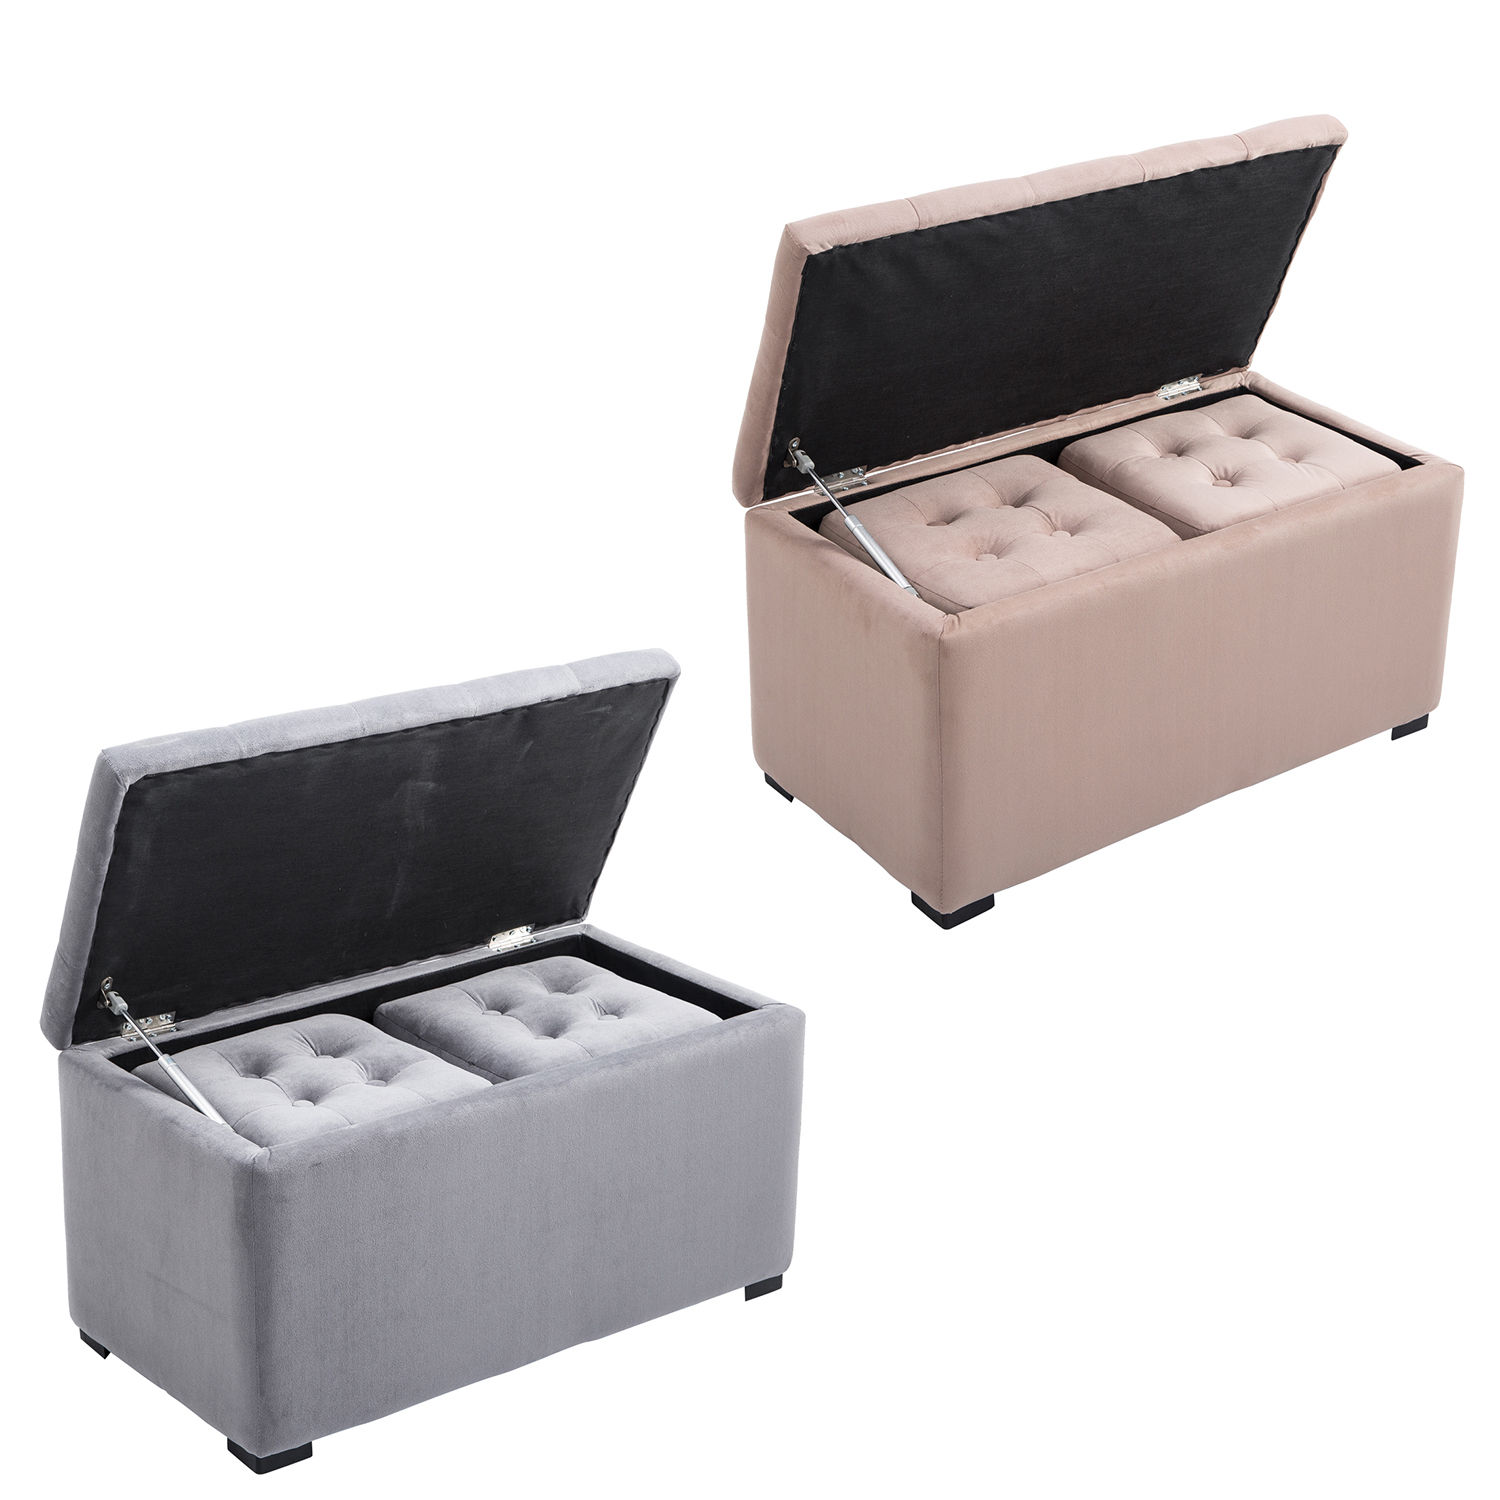 Detalhes sobre 3Pcs Nested Storage Ottoman Bench Set Pouf Tufted Footstool Footrest Living Room